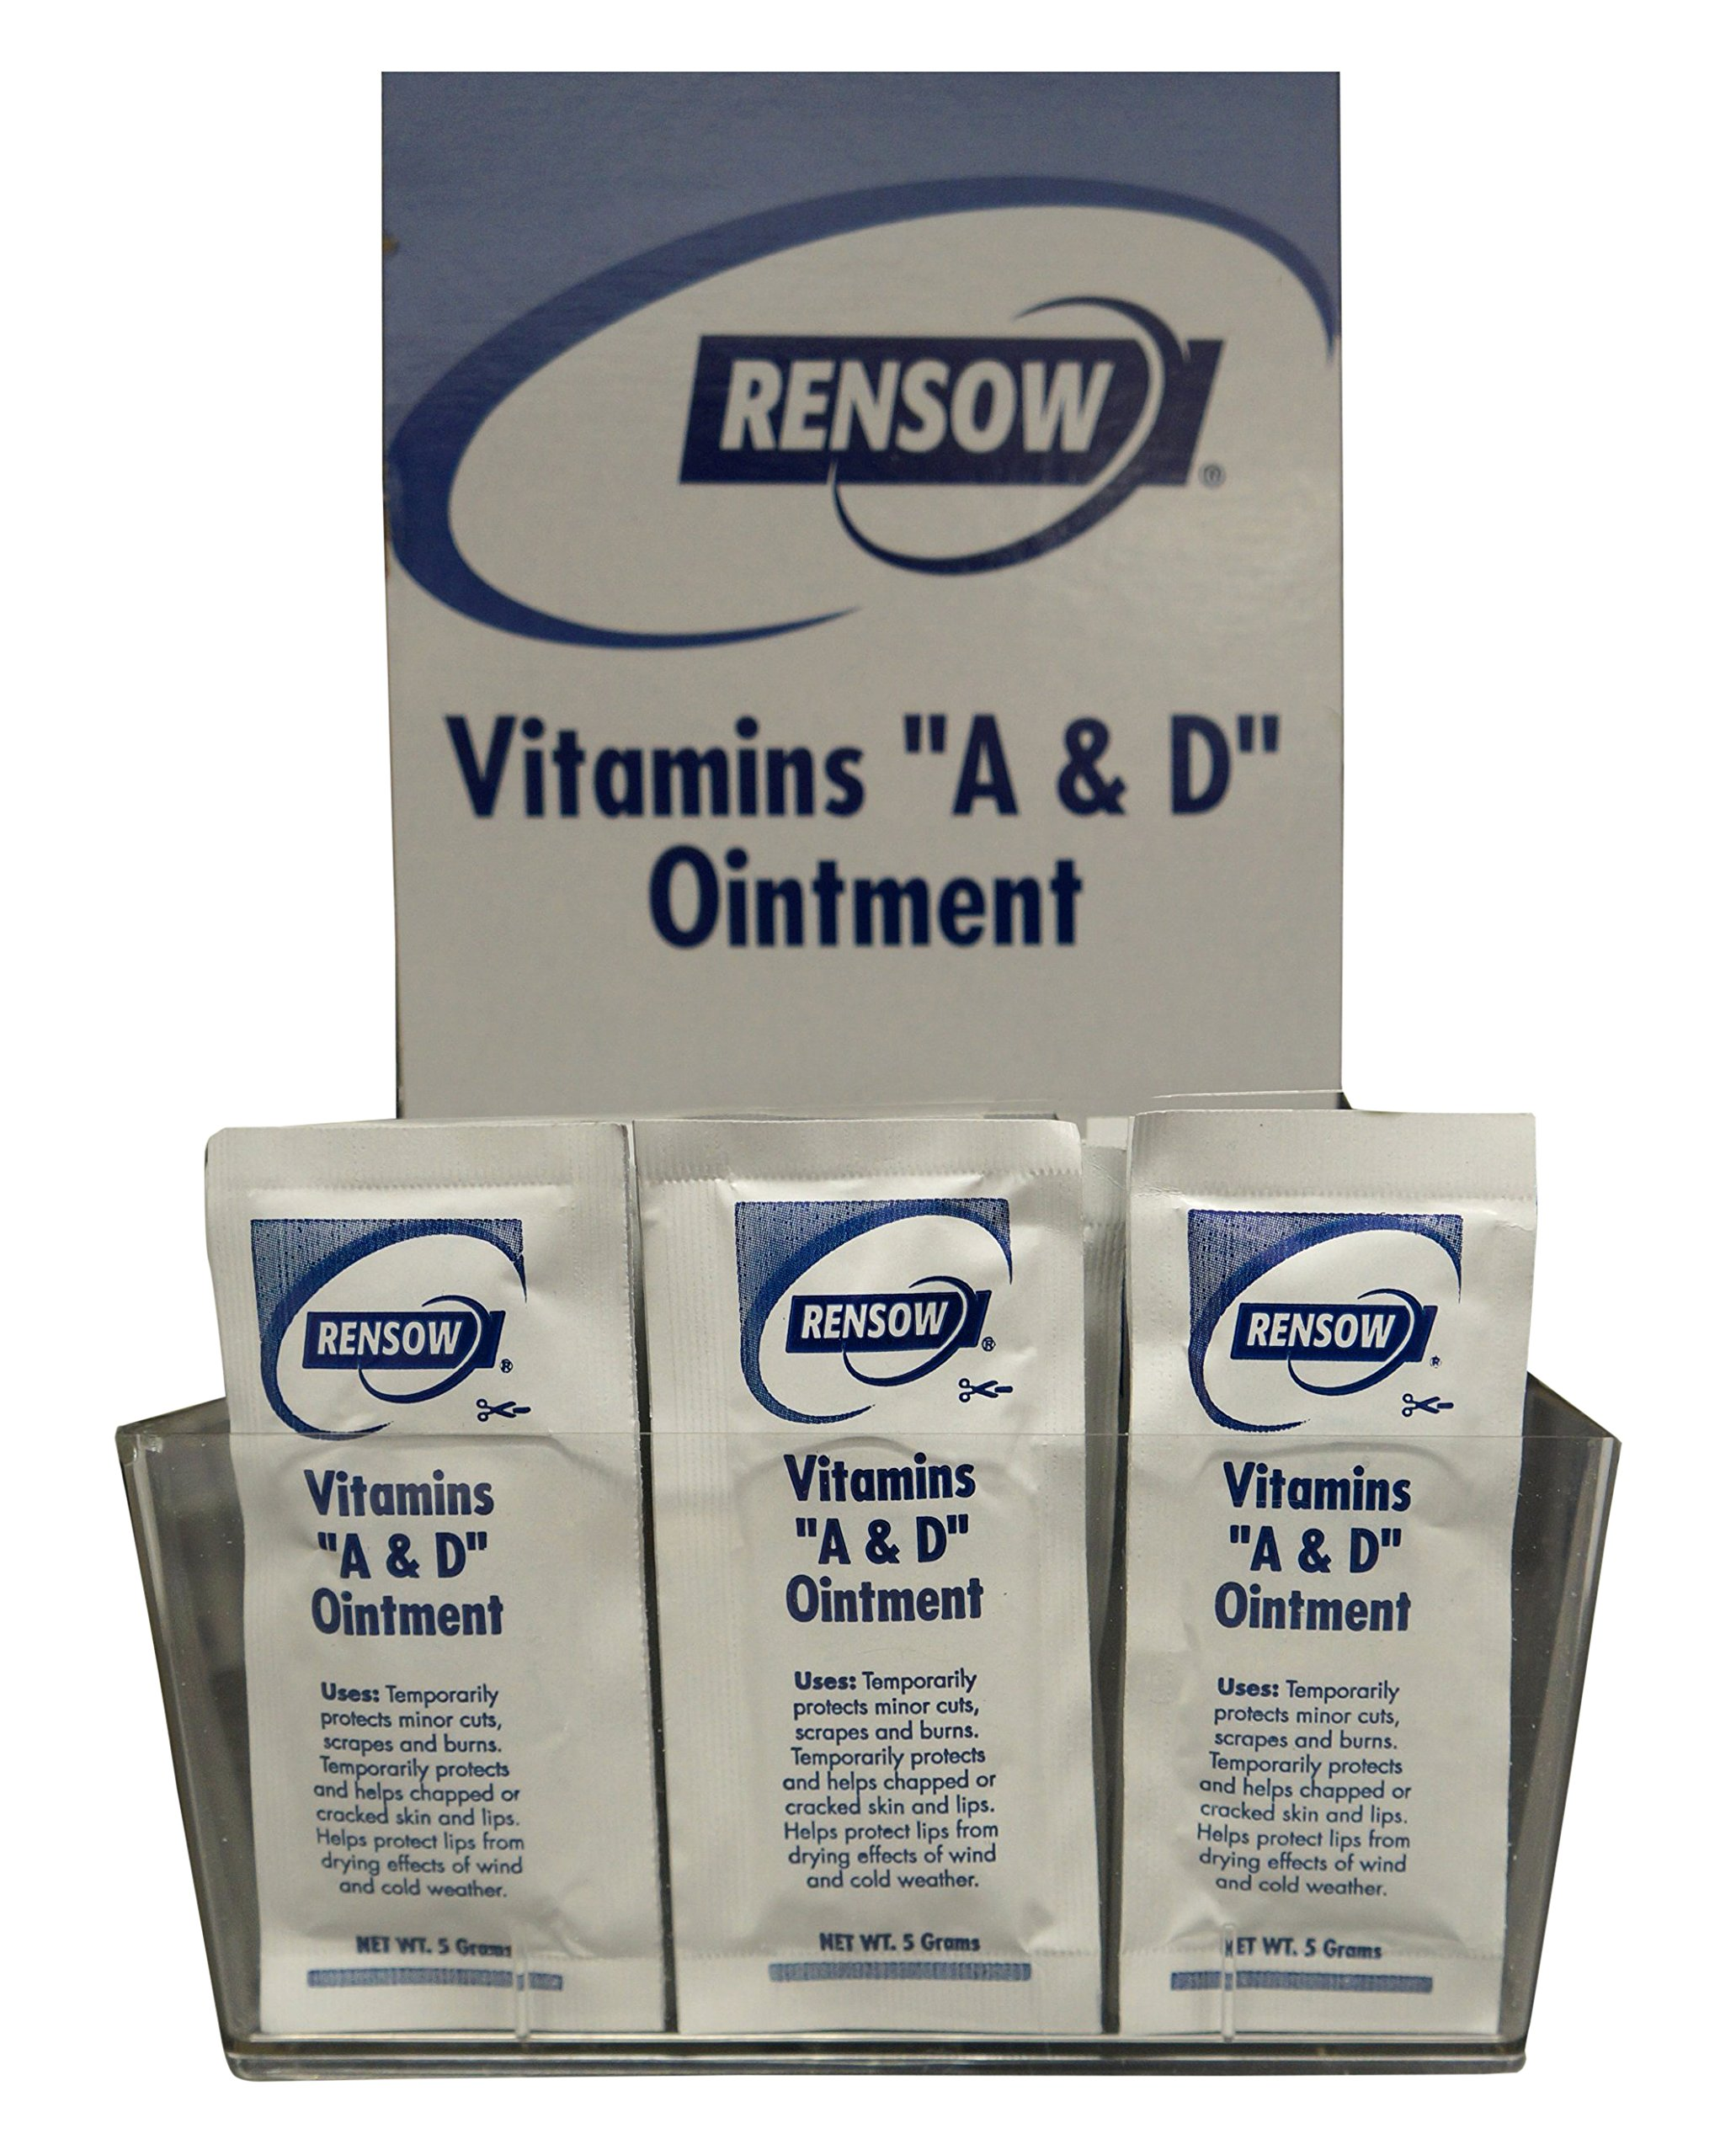 Rensow NADF Super Vitamins A and D Ointment, 144 Foil Packets by Rensow